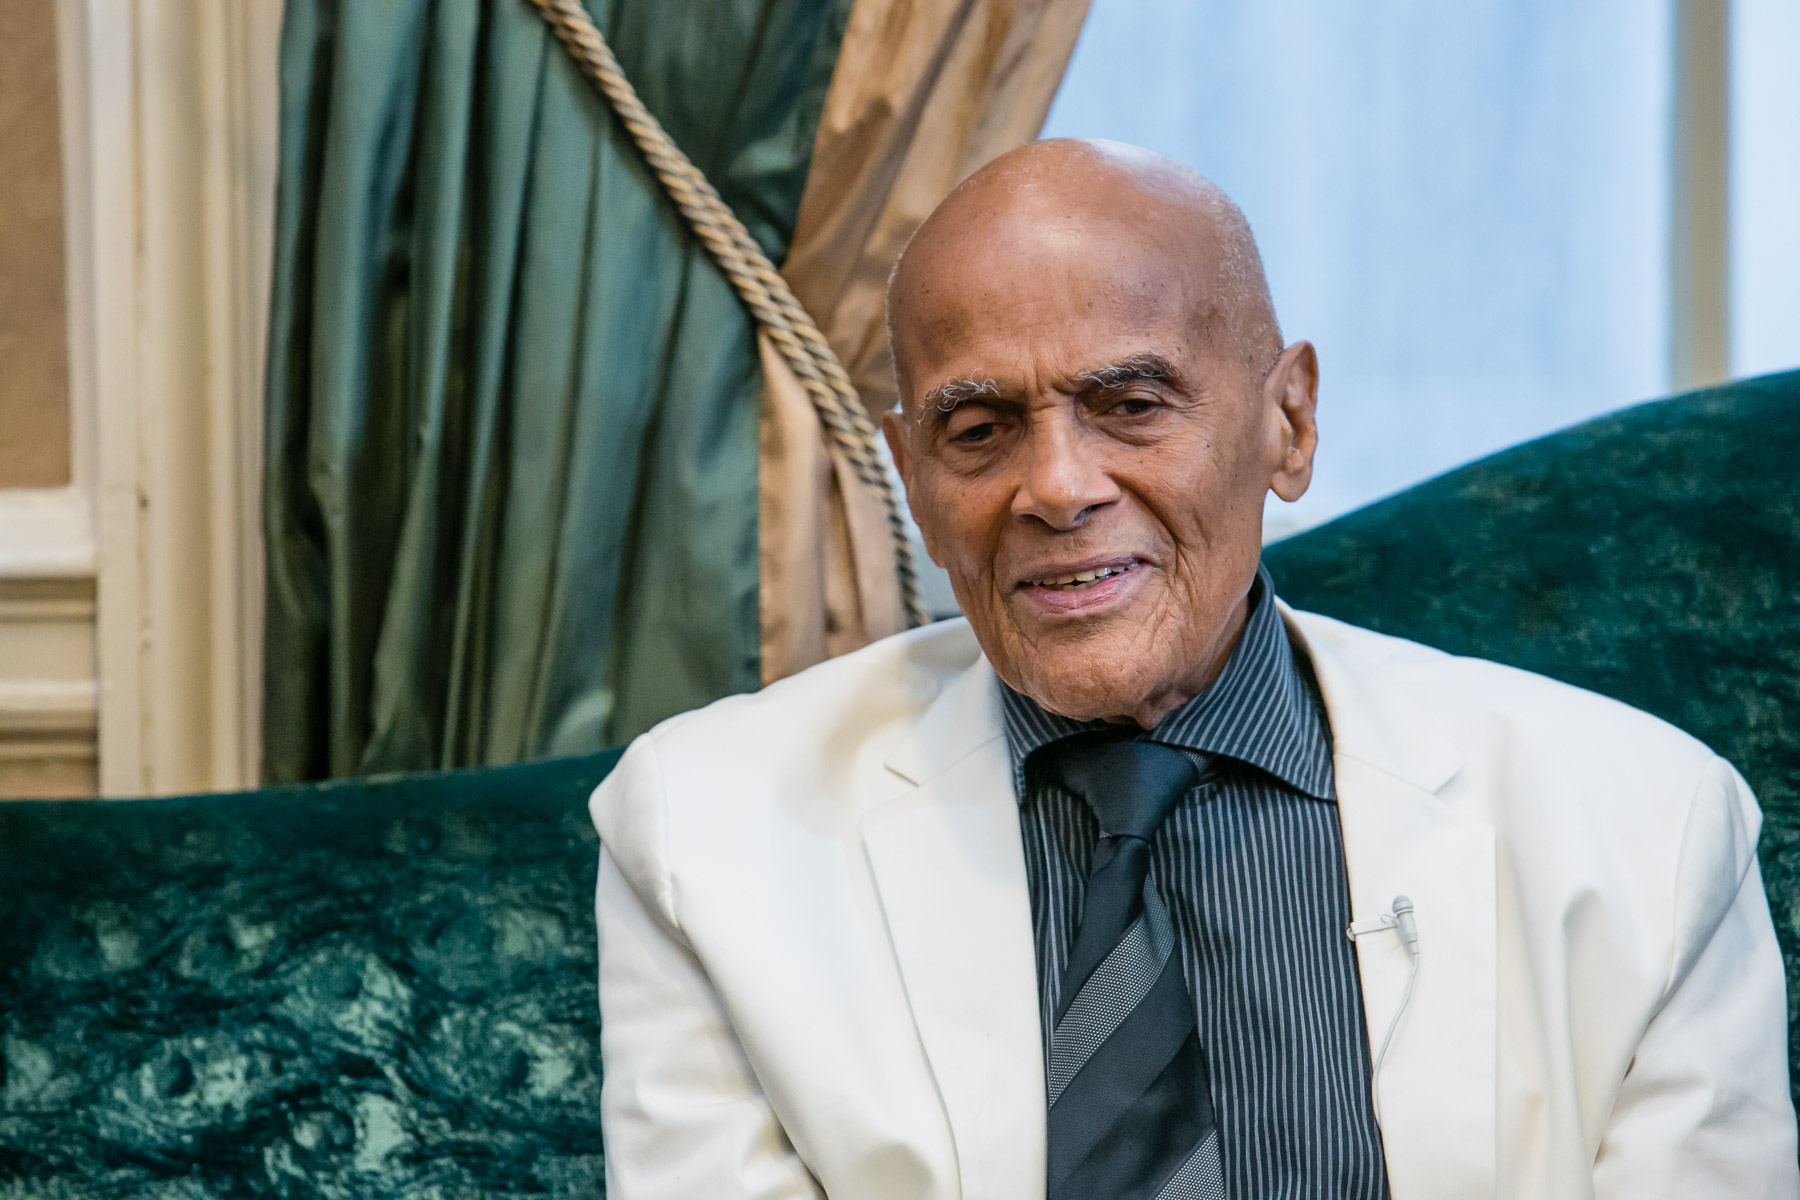 Harry Belafonte in the green room, photographed for the Toigo Foundation.